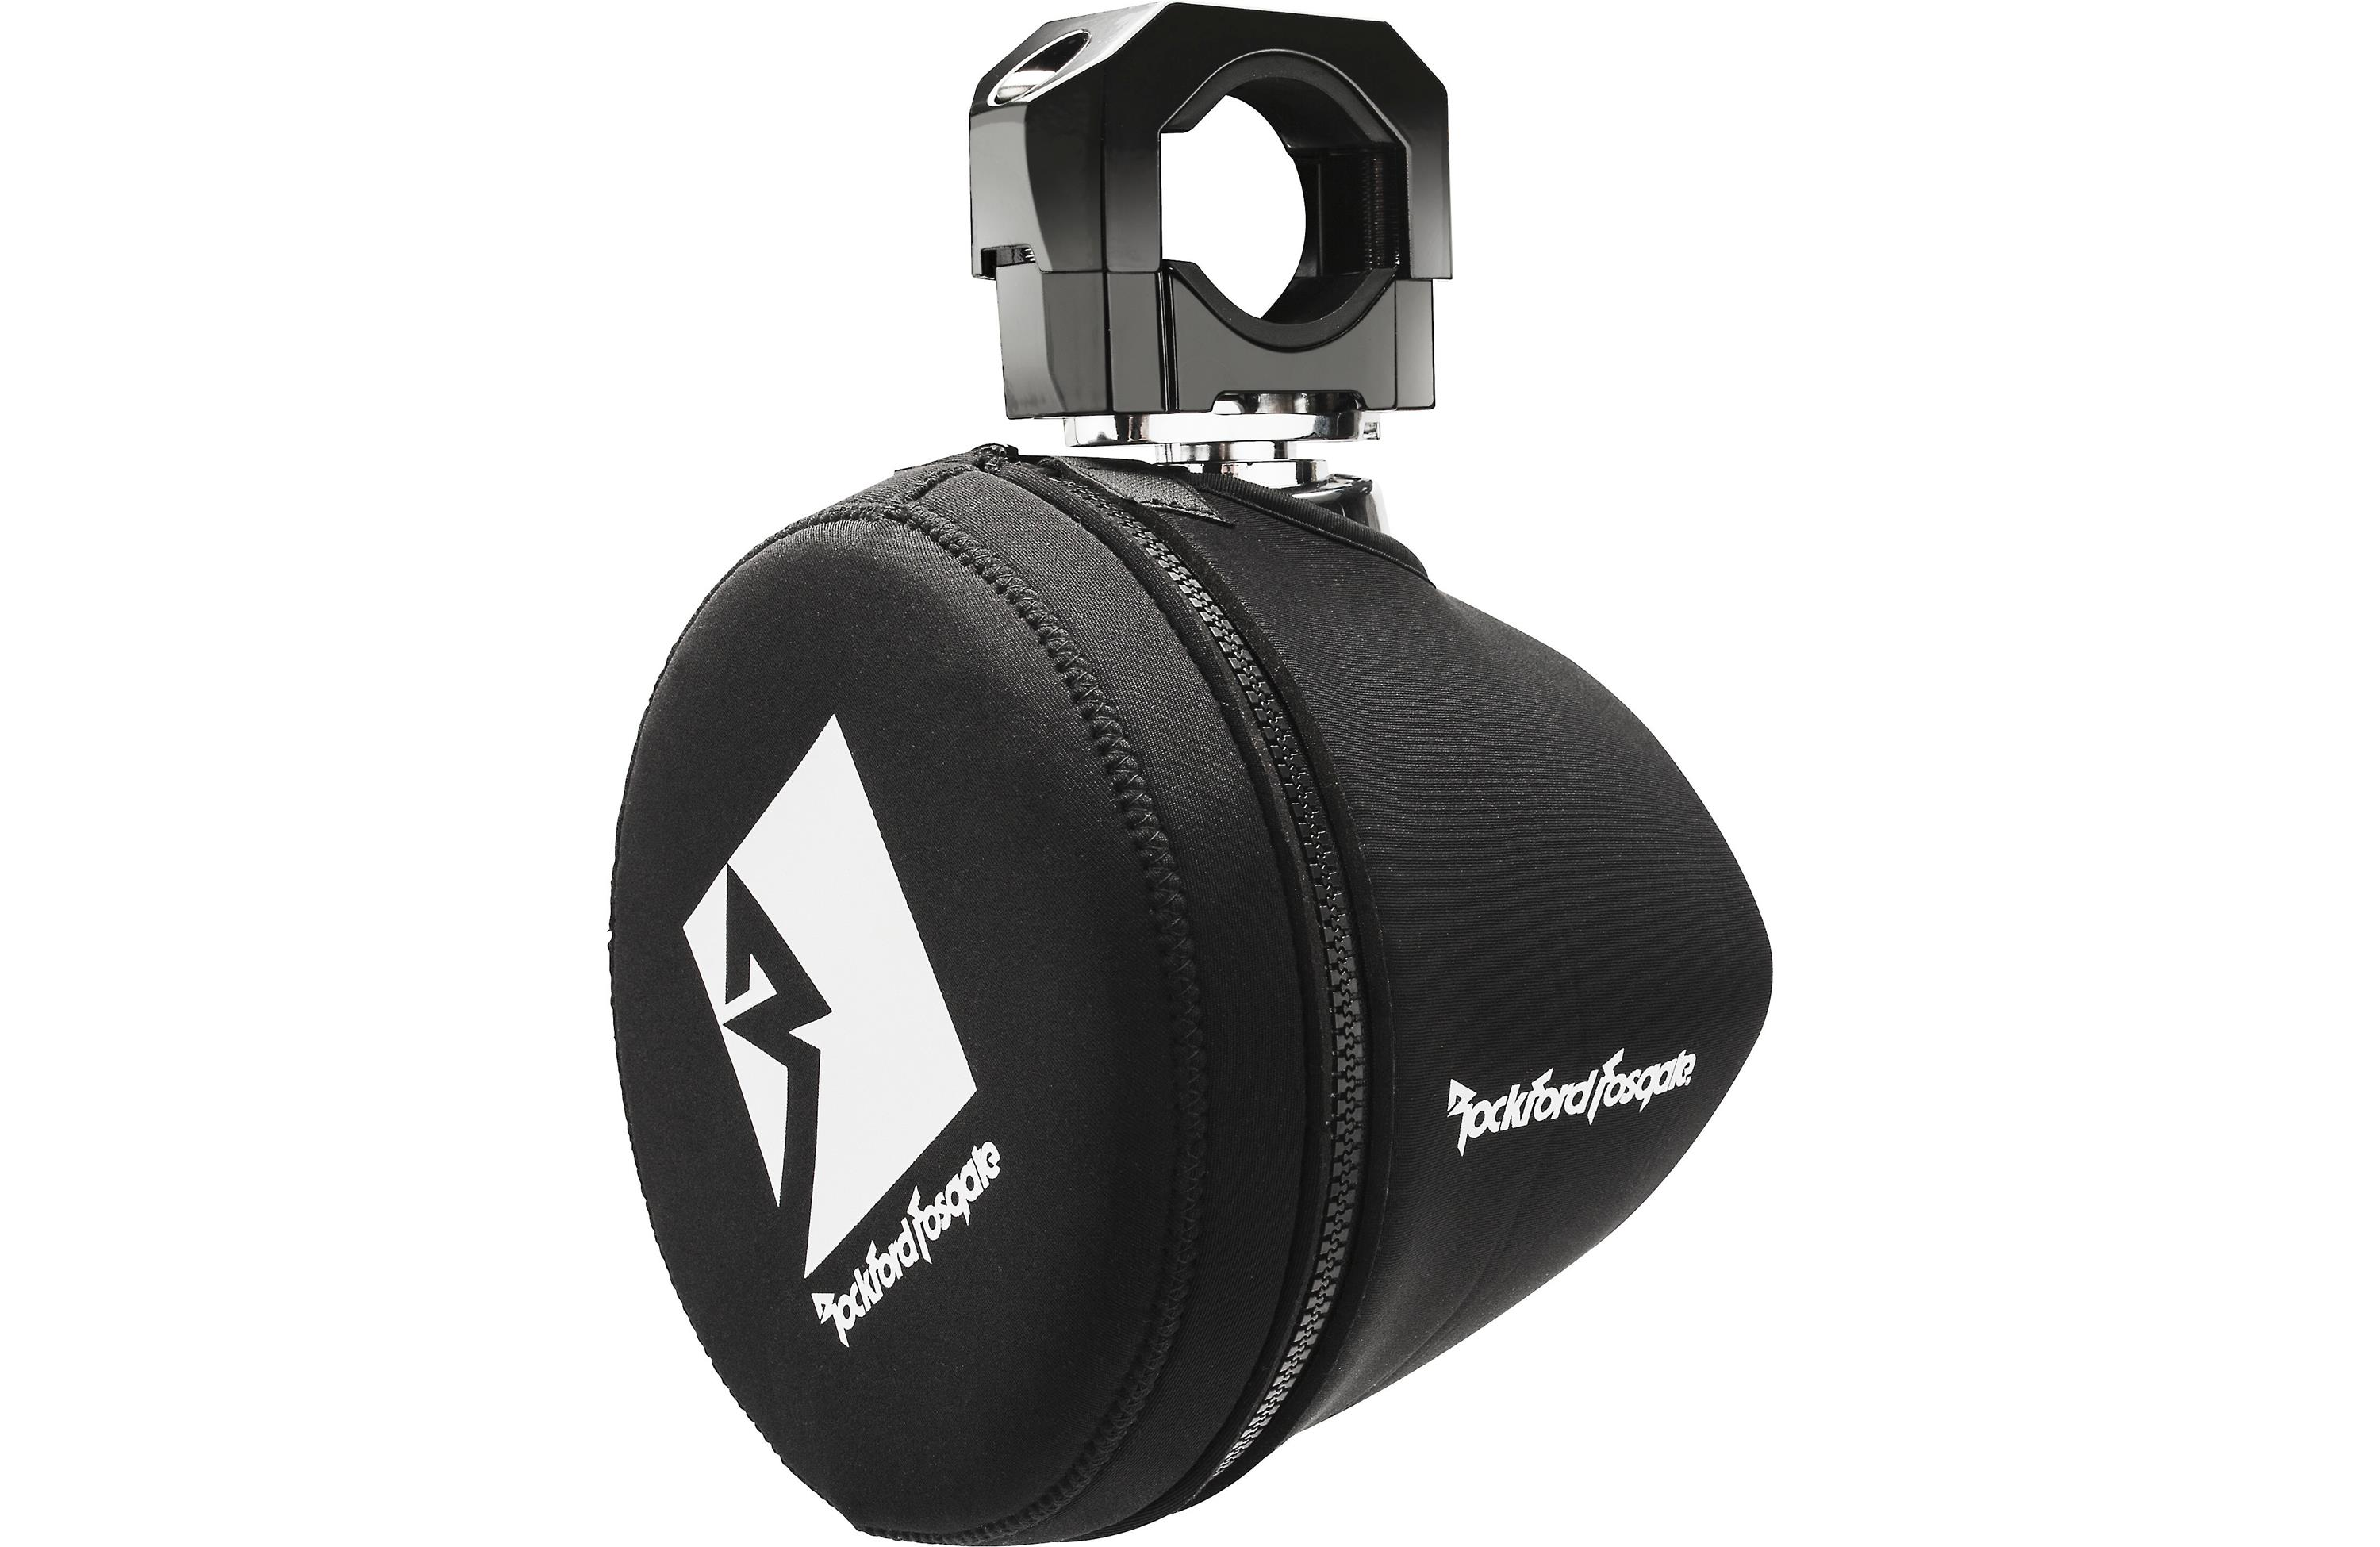 "Rockford Fosgate PM265-SPFM Punch Series Marine 6.5"" Neoprene Mini Wakeboard Tower Speaker Covers by Rockford Fosgate"